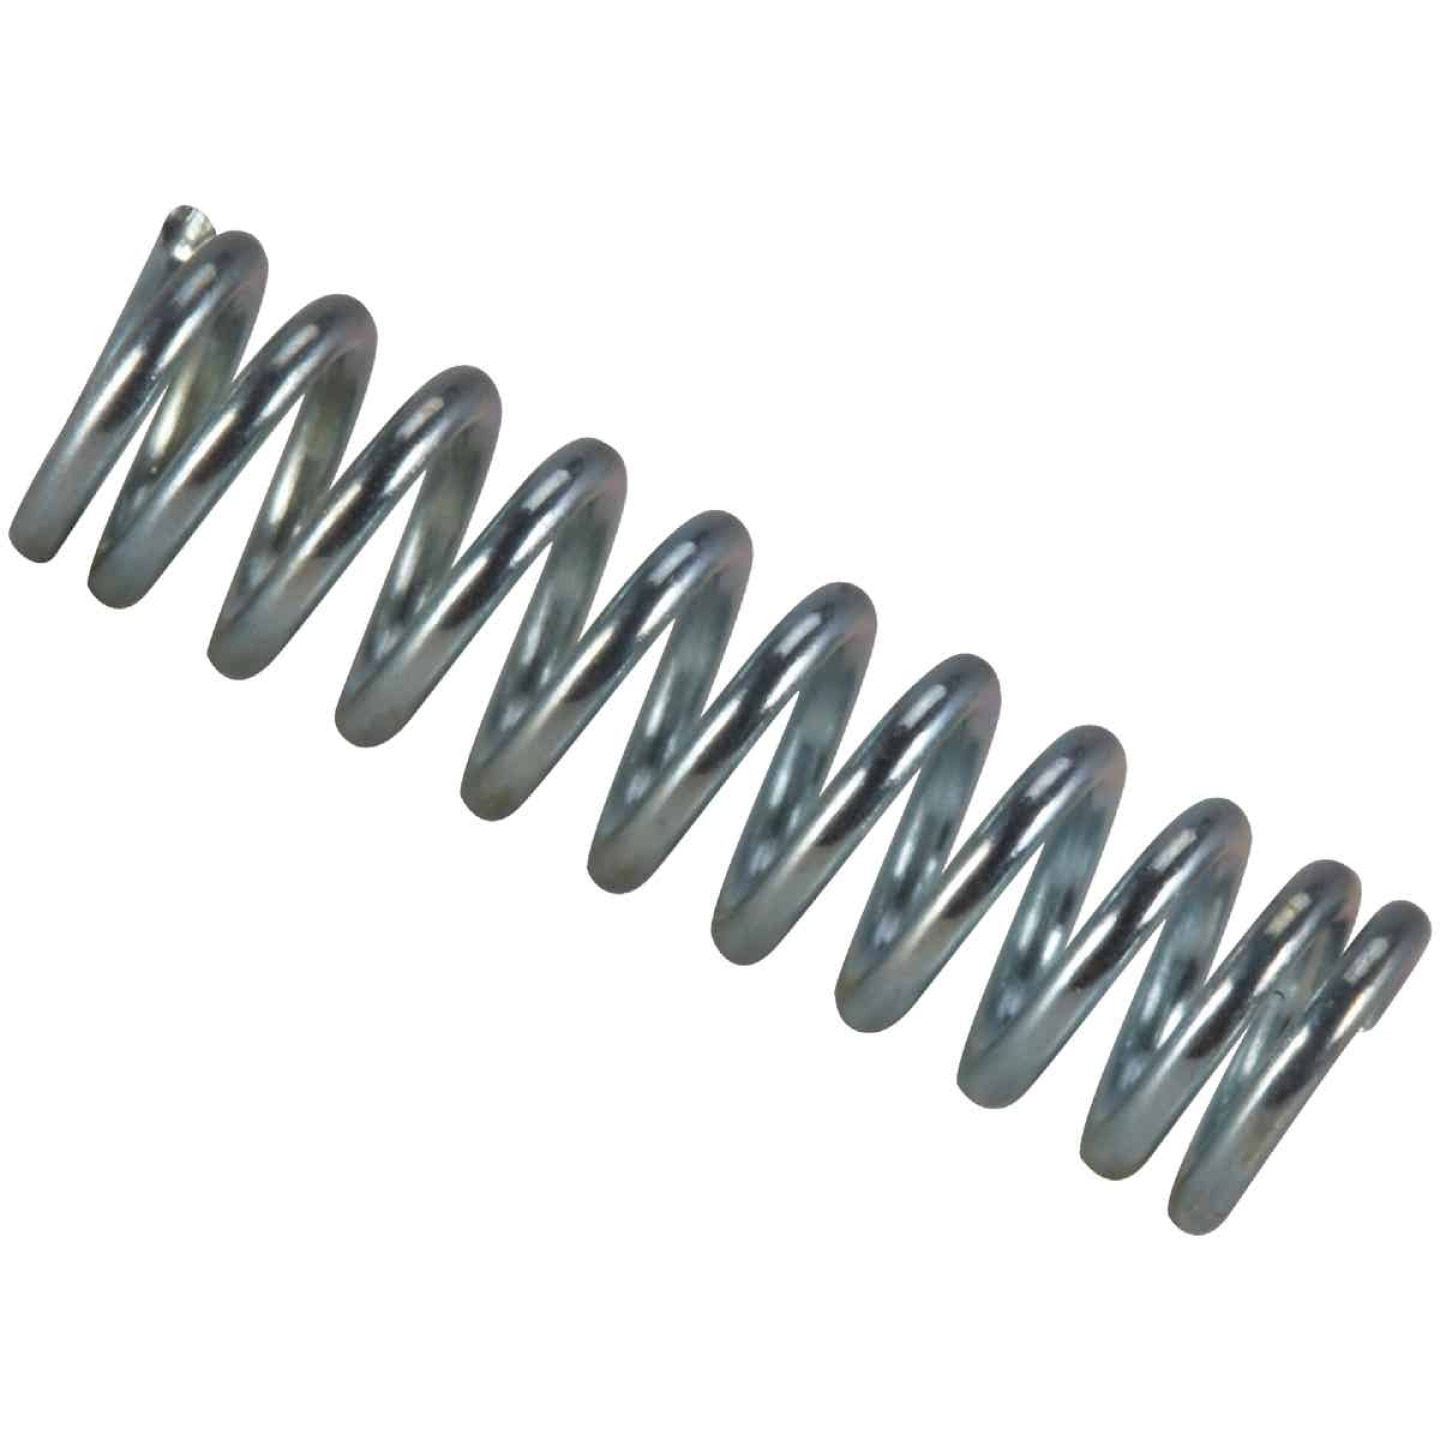 Century Spring 2-1/8 In. x 7/16 In. Compression Spring (4 Count) Image 1